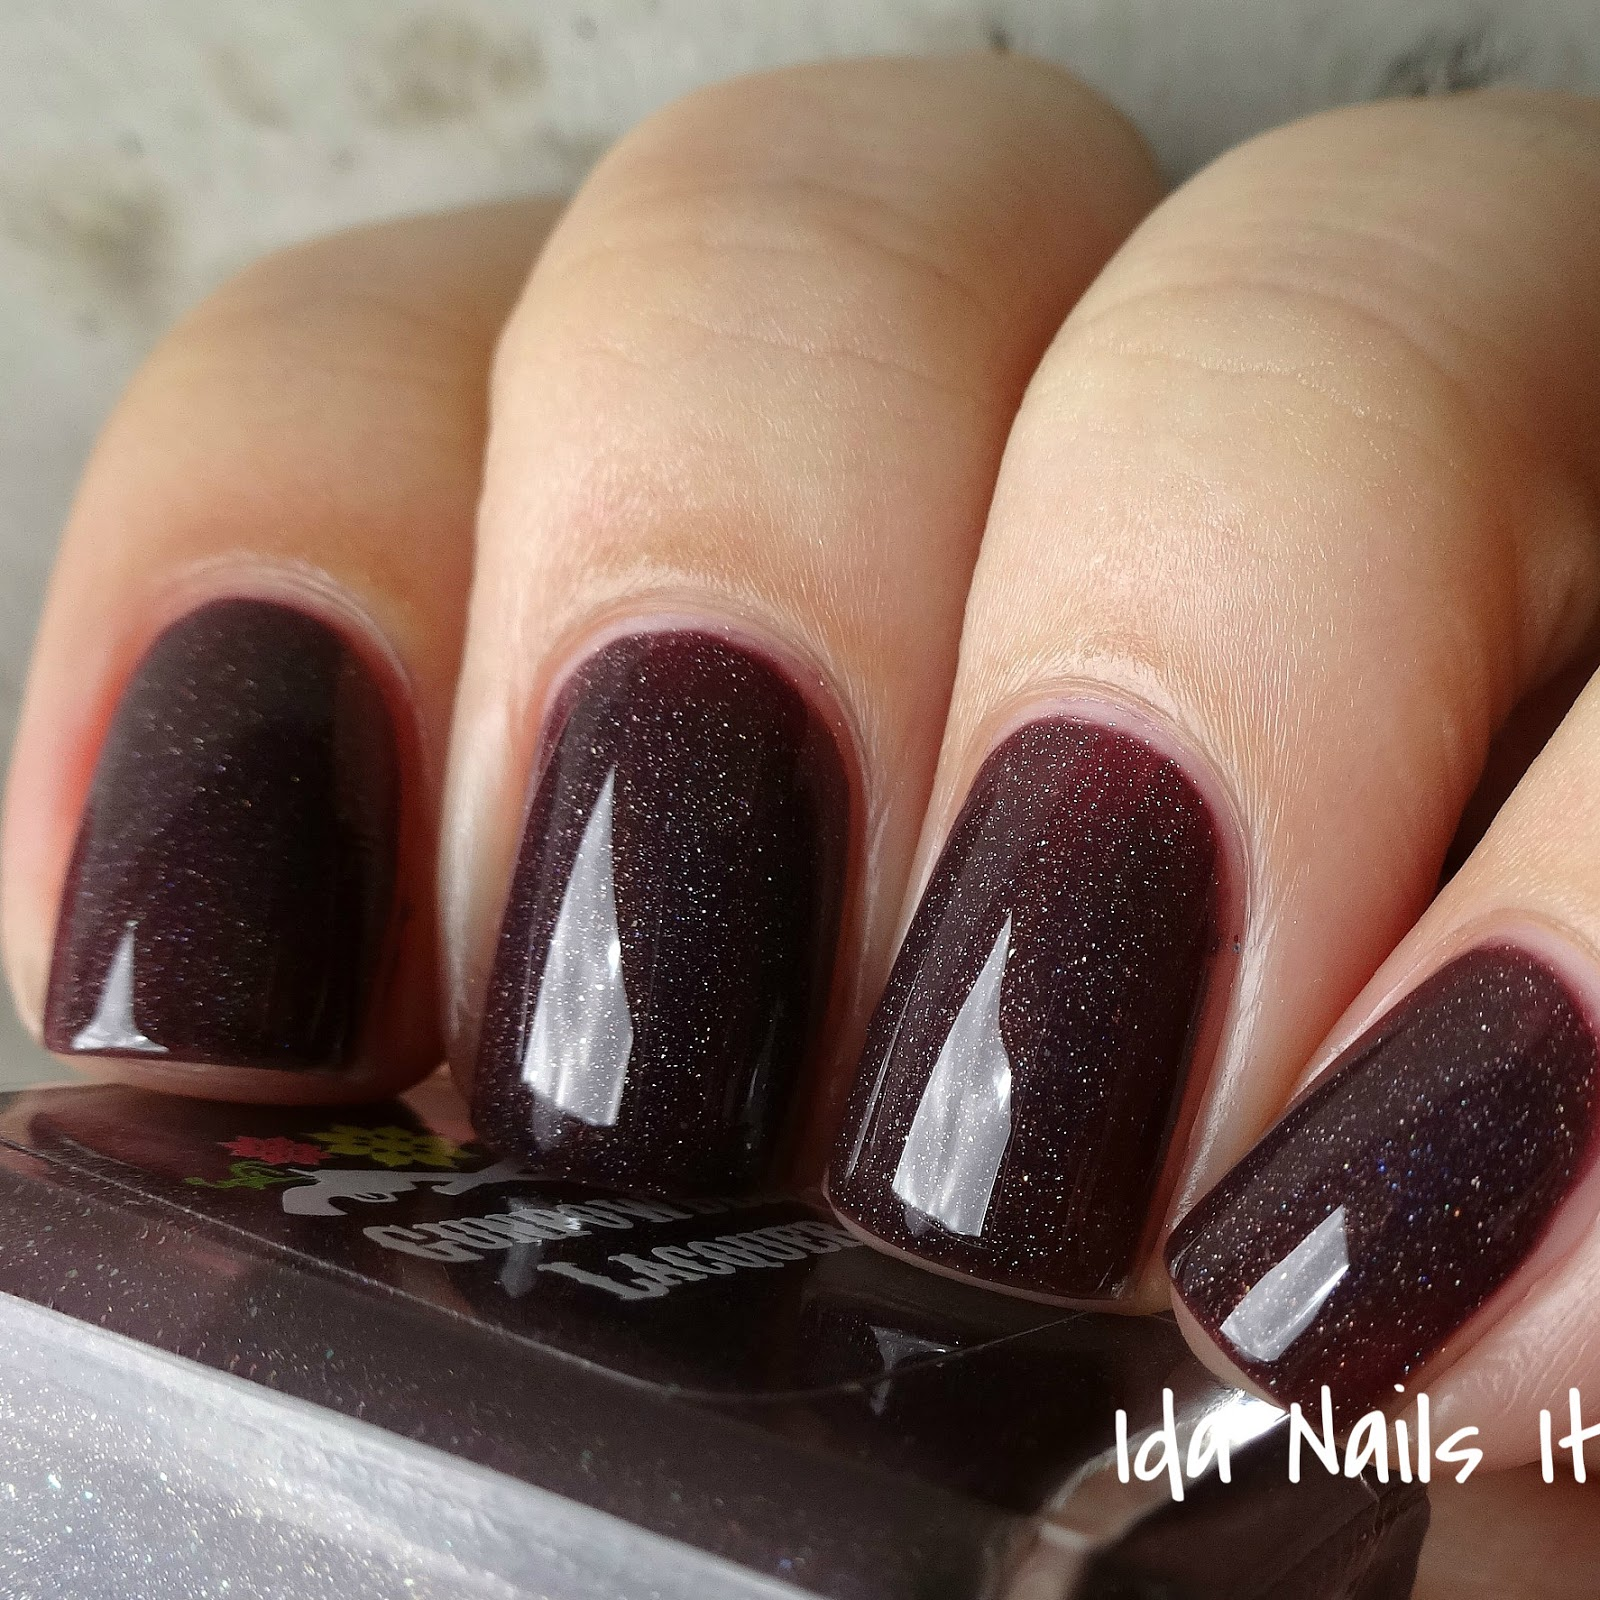 Ida Nails It: Gunpowder Lacquer Wild at Heart Collection: Swatches ...